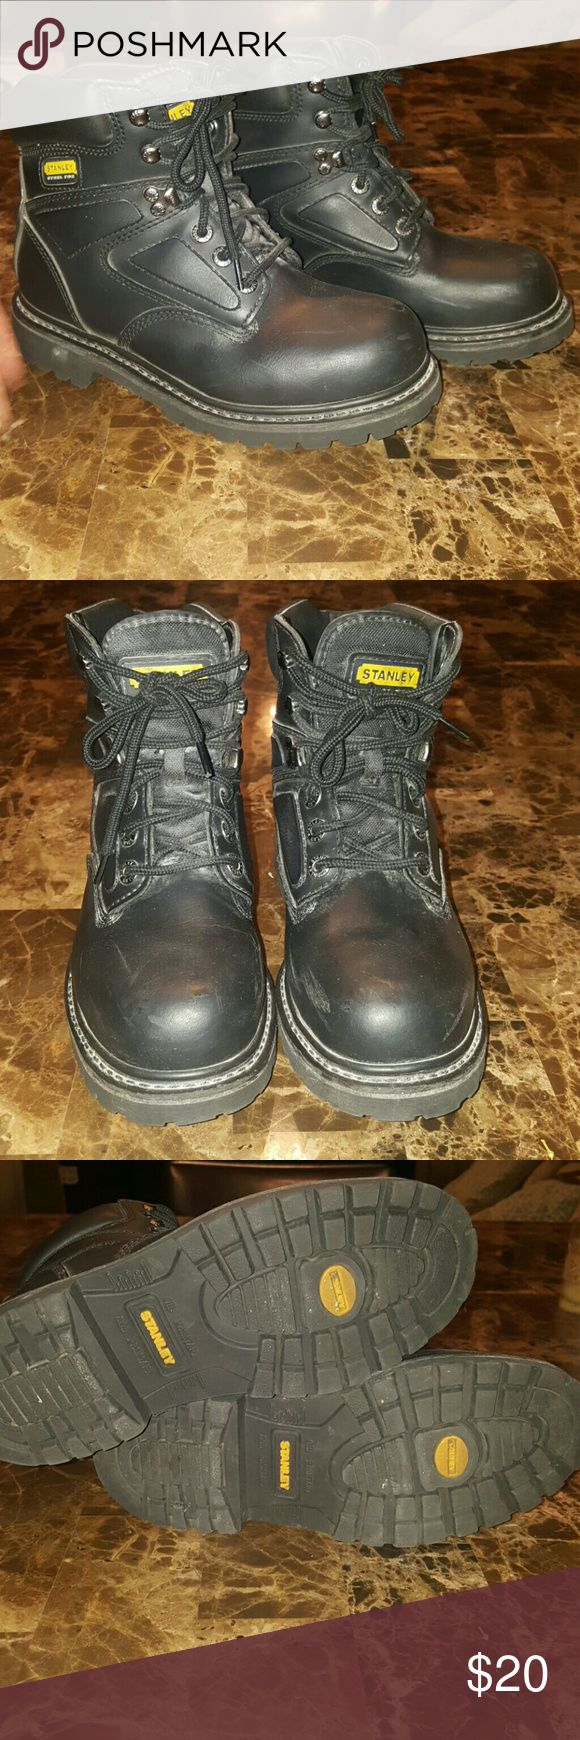 Stanley Steel Toe work boots Heavy duty steel toe lace up work boots with padded collar around upper part of boots provides excellent comfort. stanley Shoes Boots